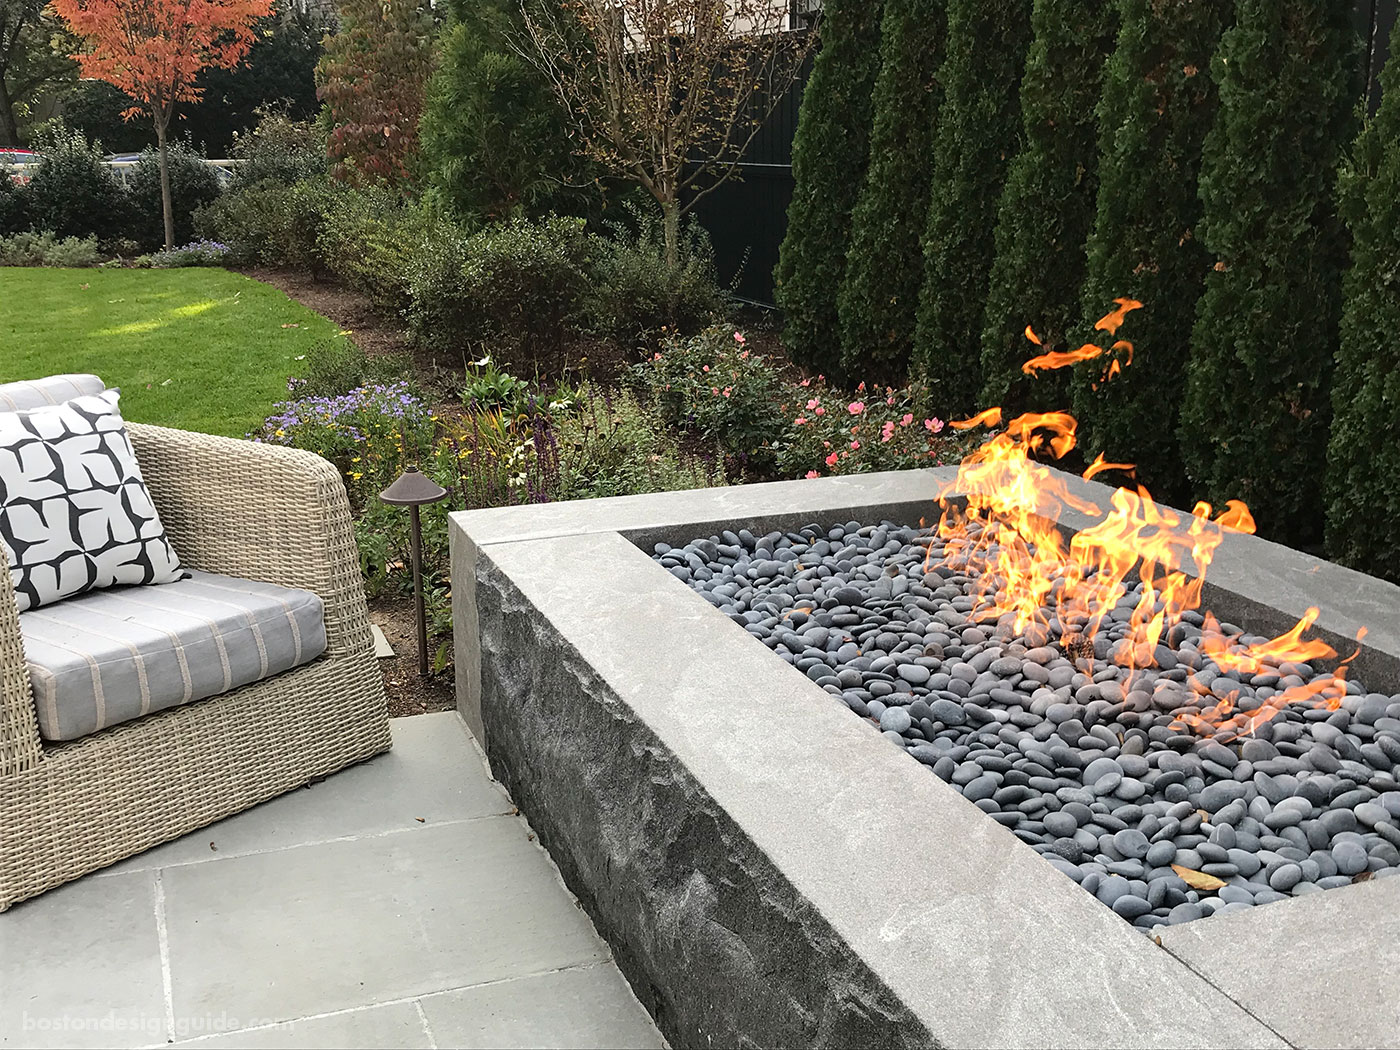 Custom fireplace designed by Gregory Lombardi Design and constructed by Landscape Creations